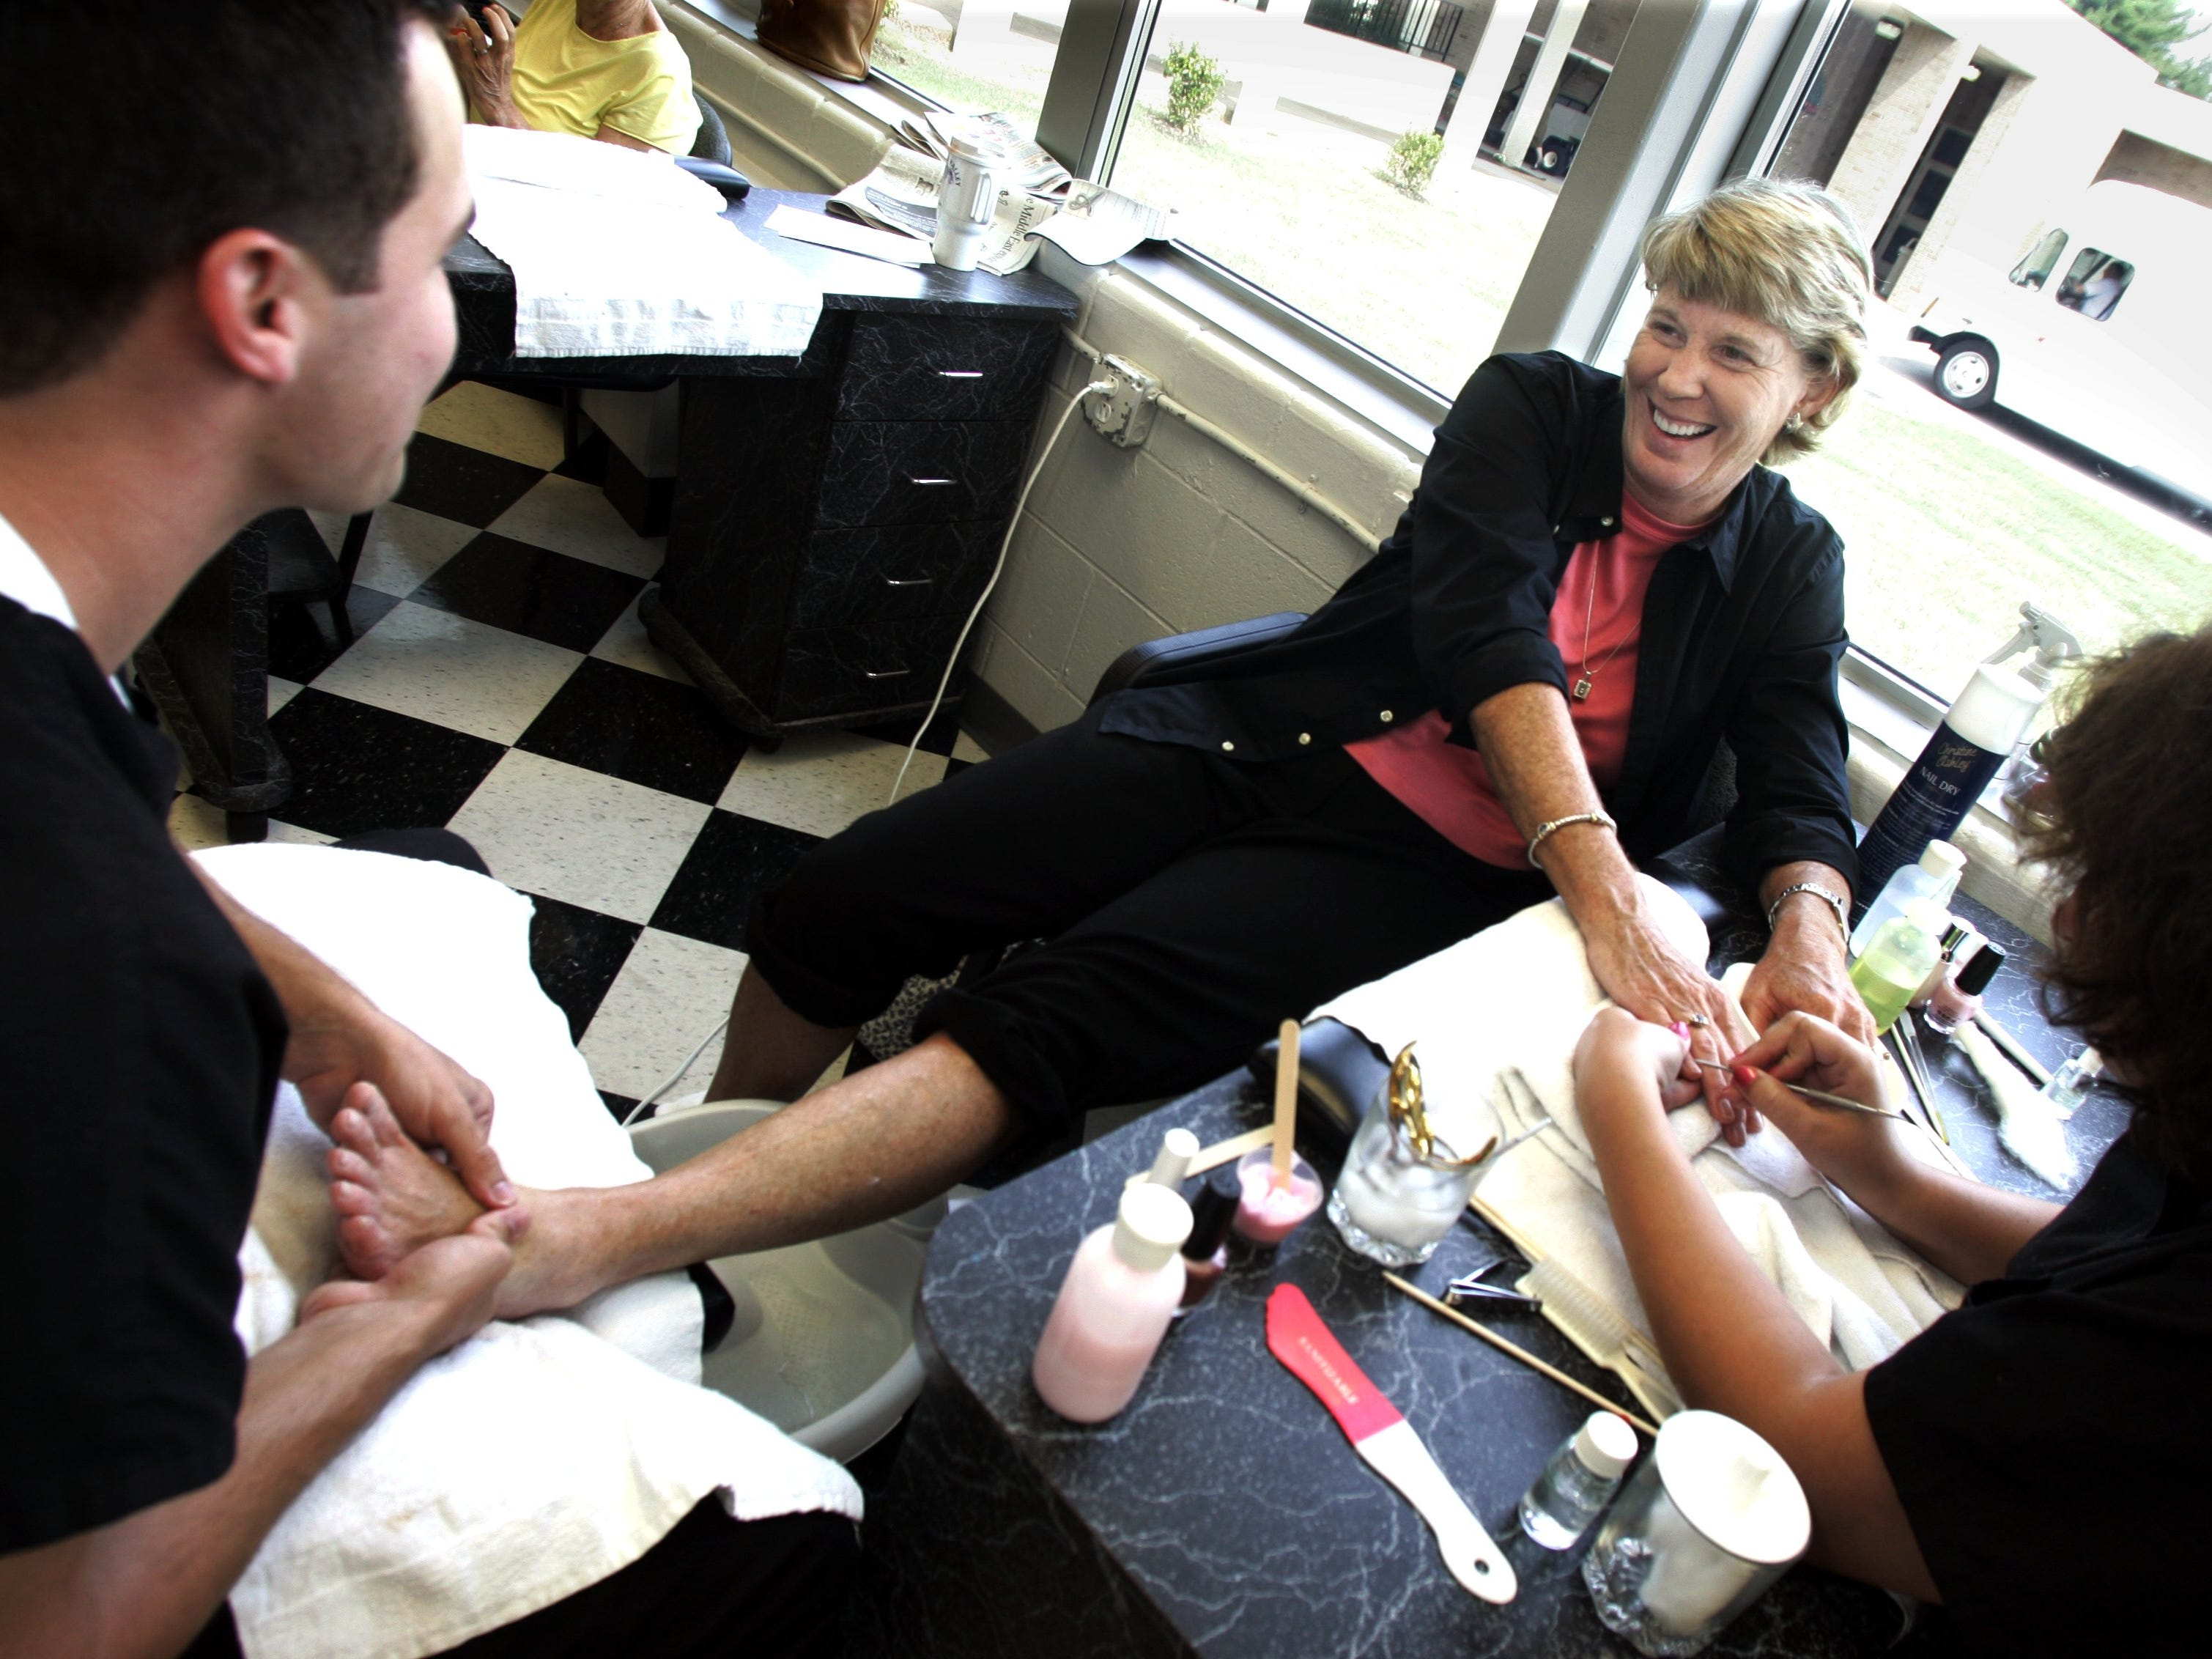 Lady of luxury Mary Hance, aka Ms. Cheap, gets the royal treatment as she has a manicure and pedicure at Tennessee Technology Center on White Bridge Road on July 18, 2006. Troy Dailey handles the feet while Jordon Fish takes care of the hands.